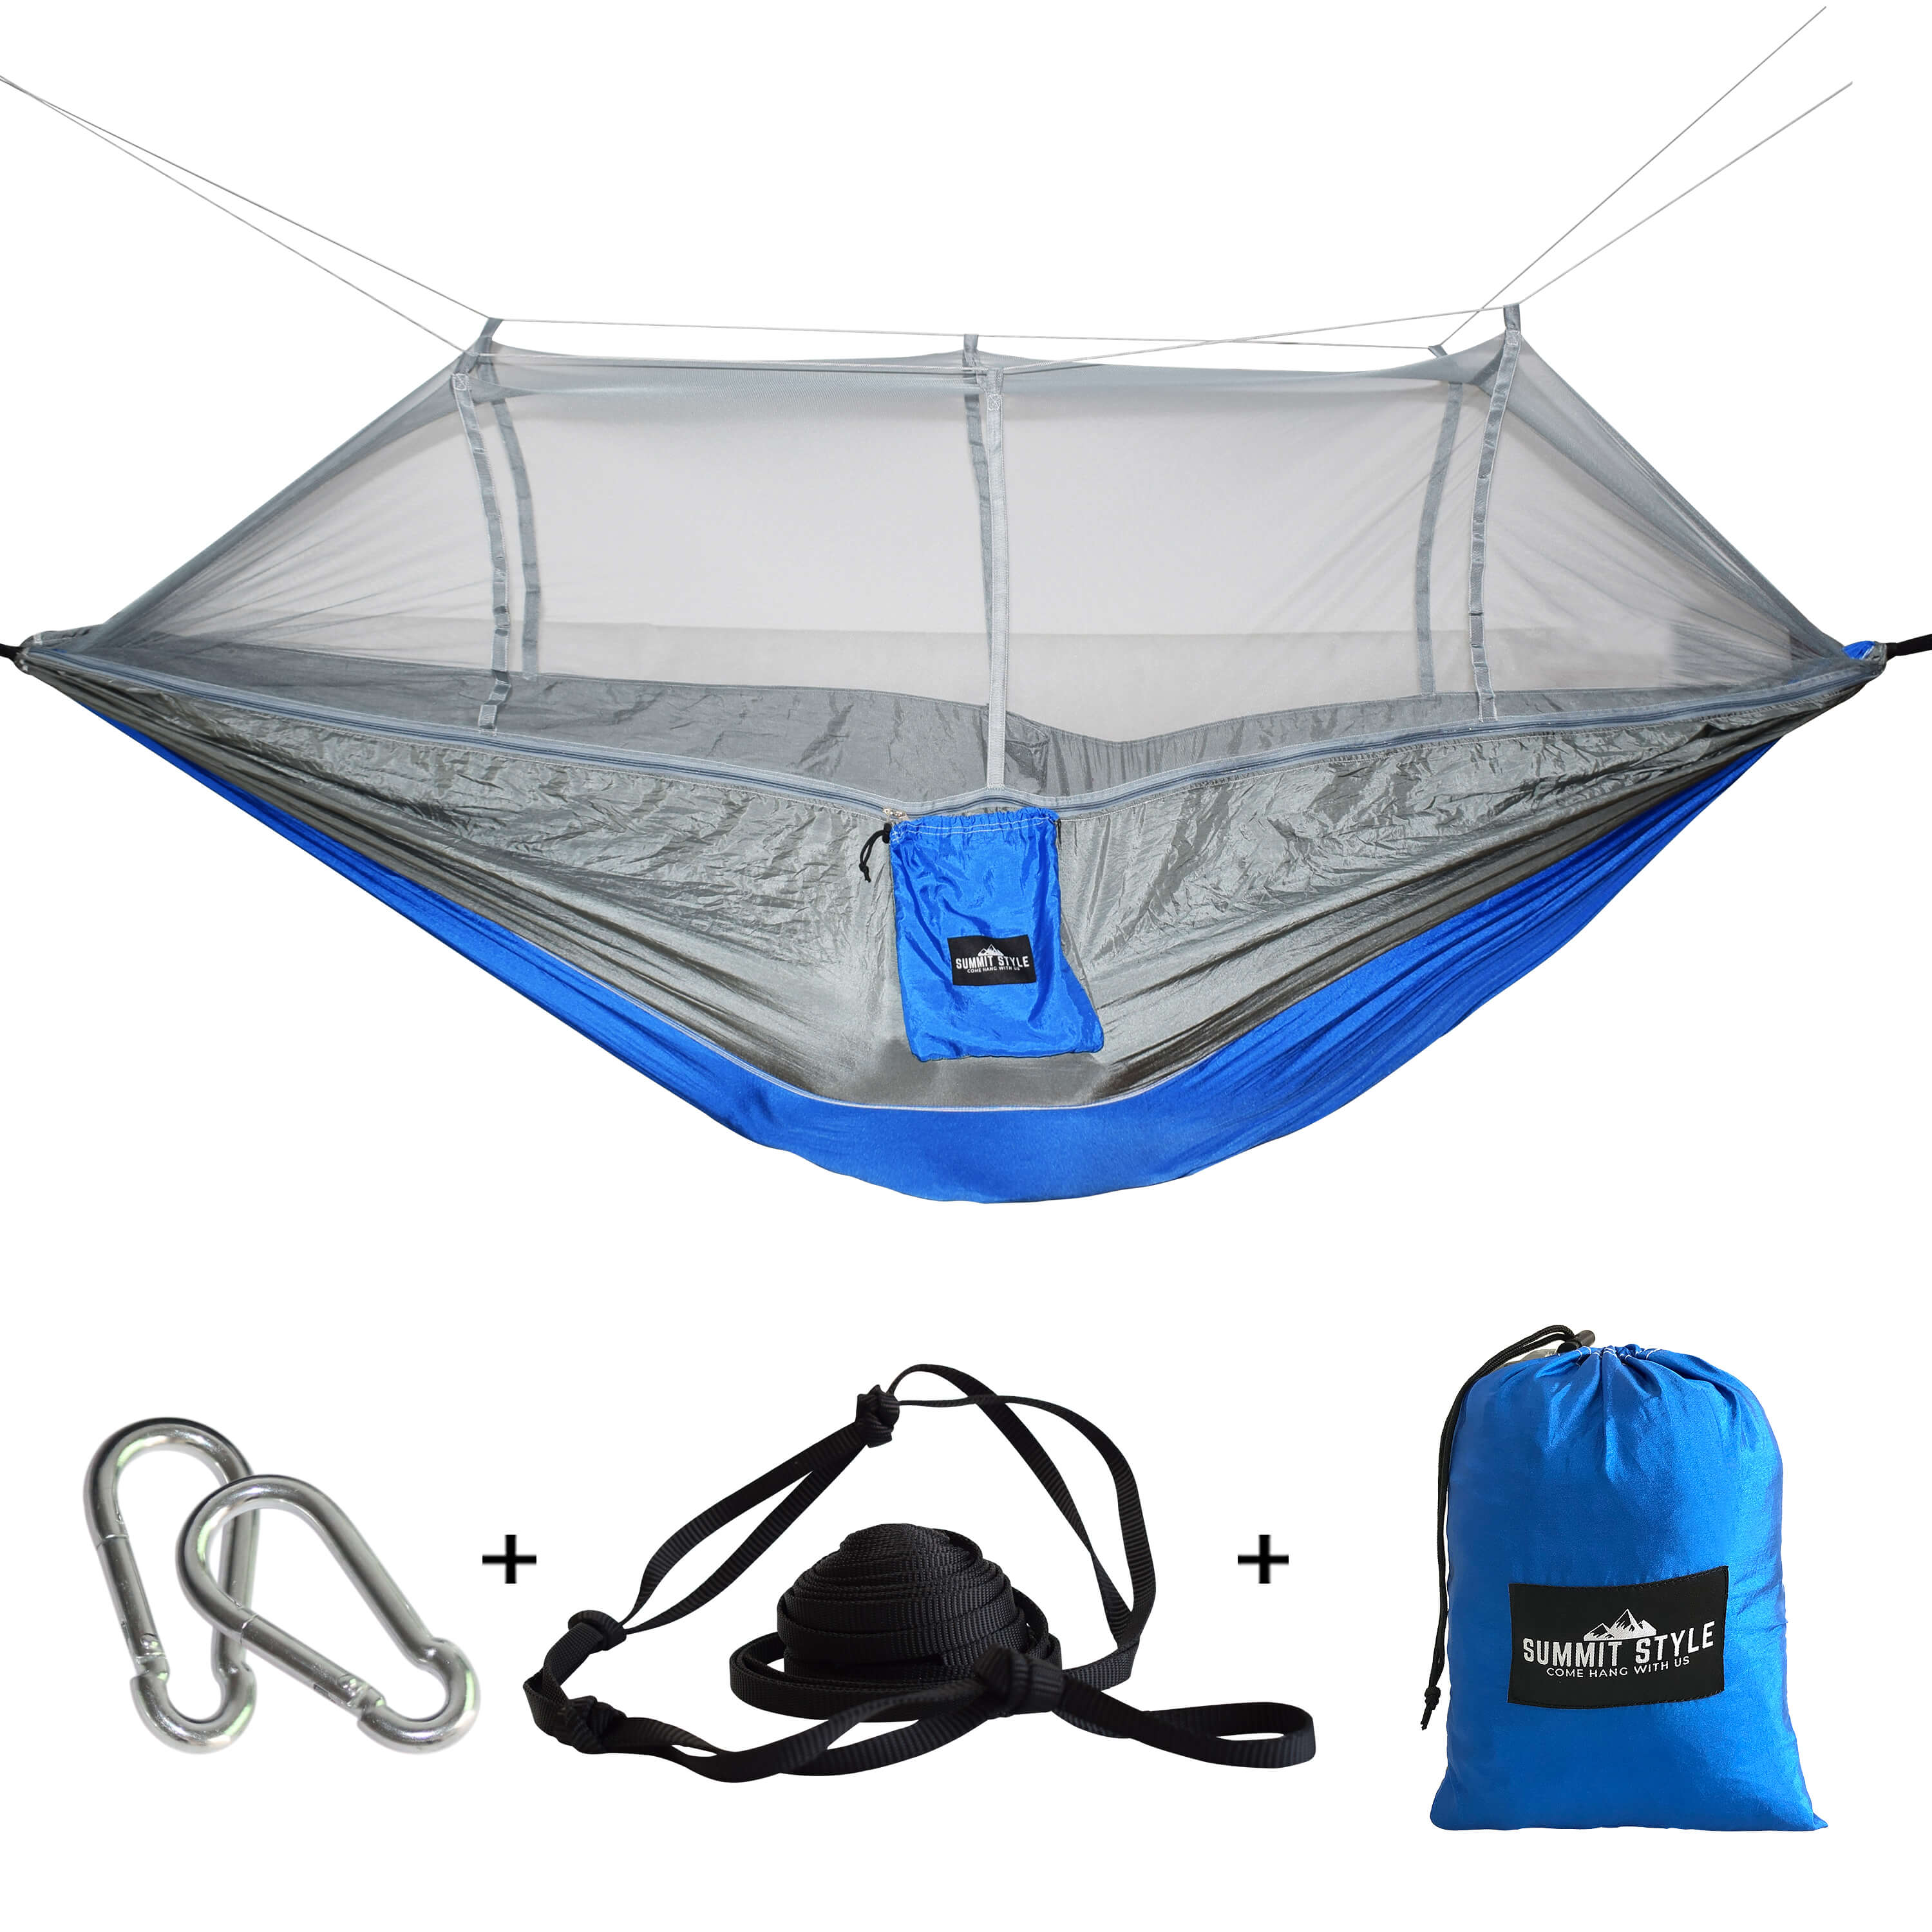 Summit Style's Nature Nest Hammock with Mosquito Net: Blue